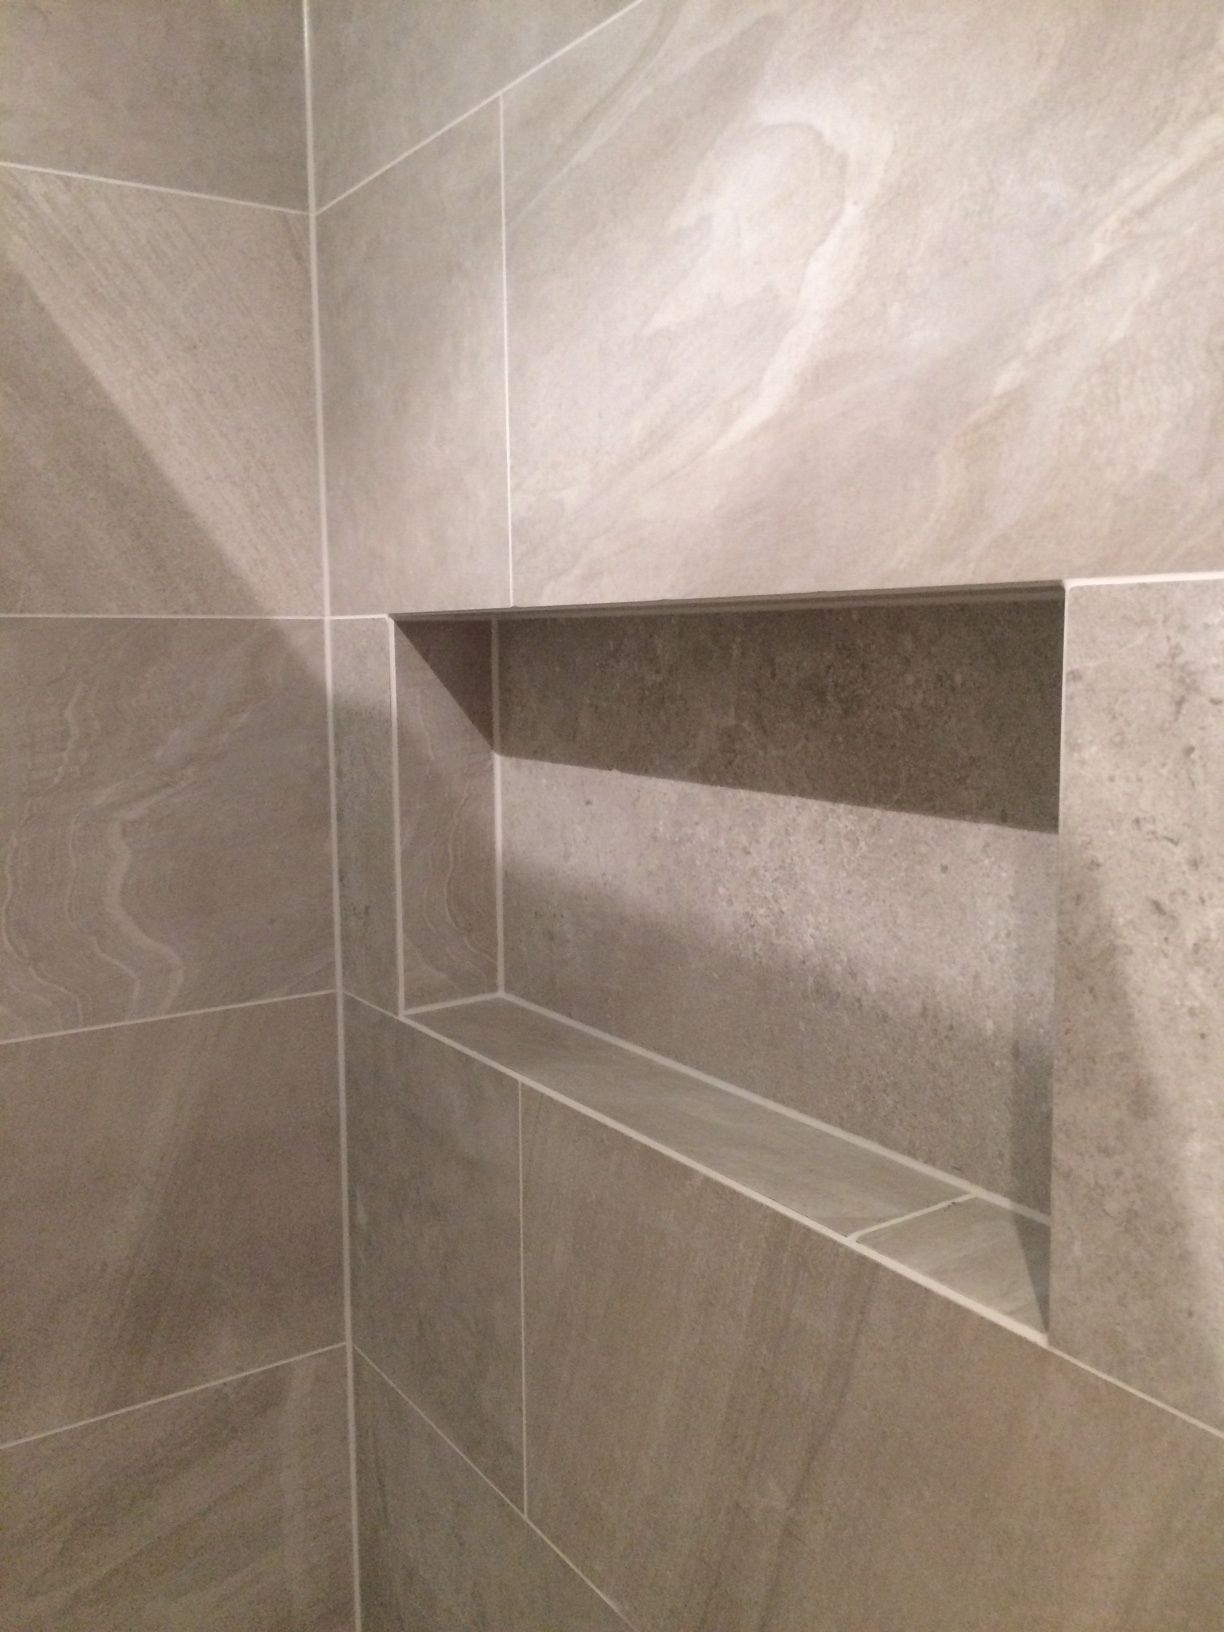 Mitredtiles Around Recessed Niche In Shower Tile Bathroom Shower Niche Shower Shelves